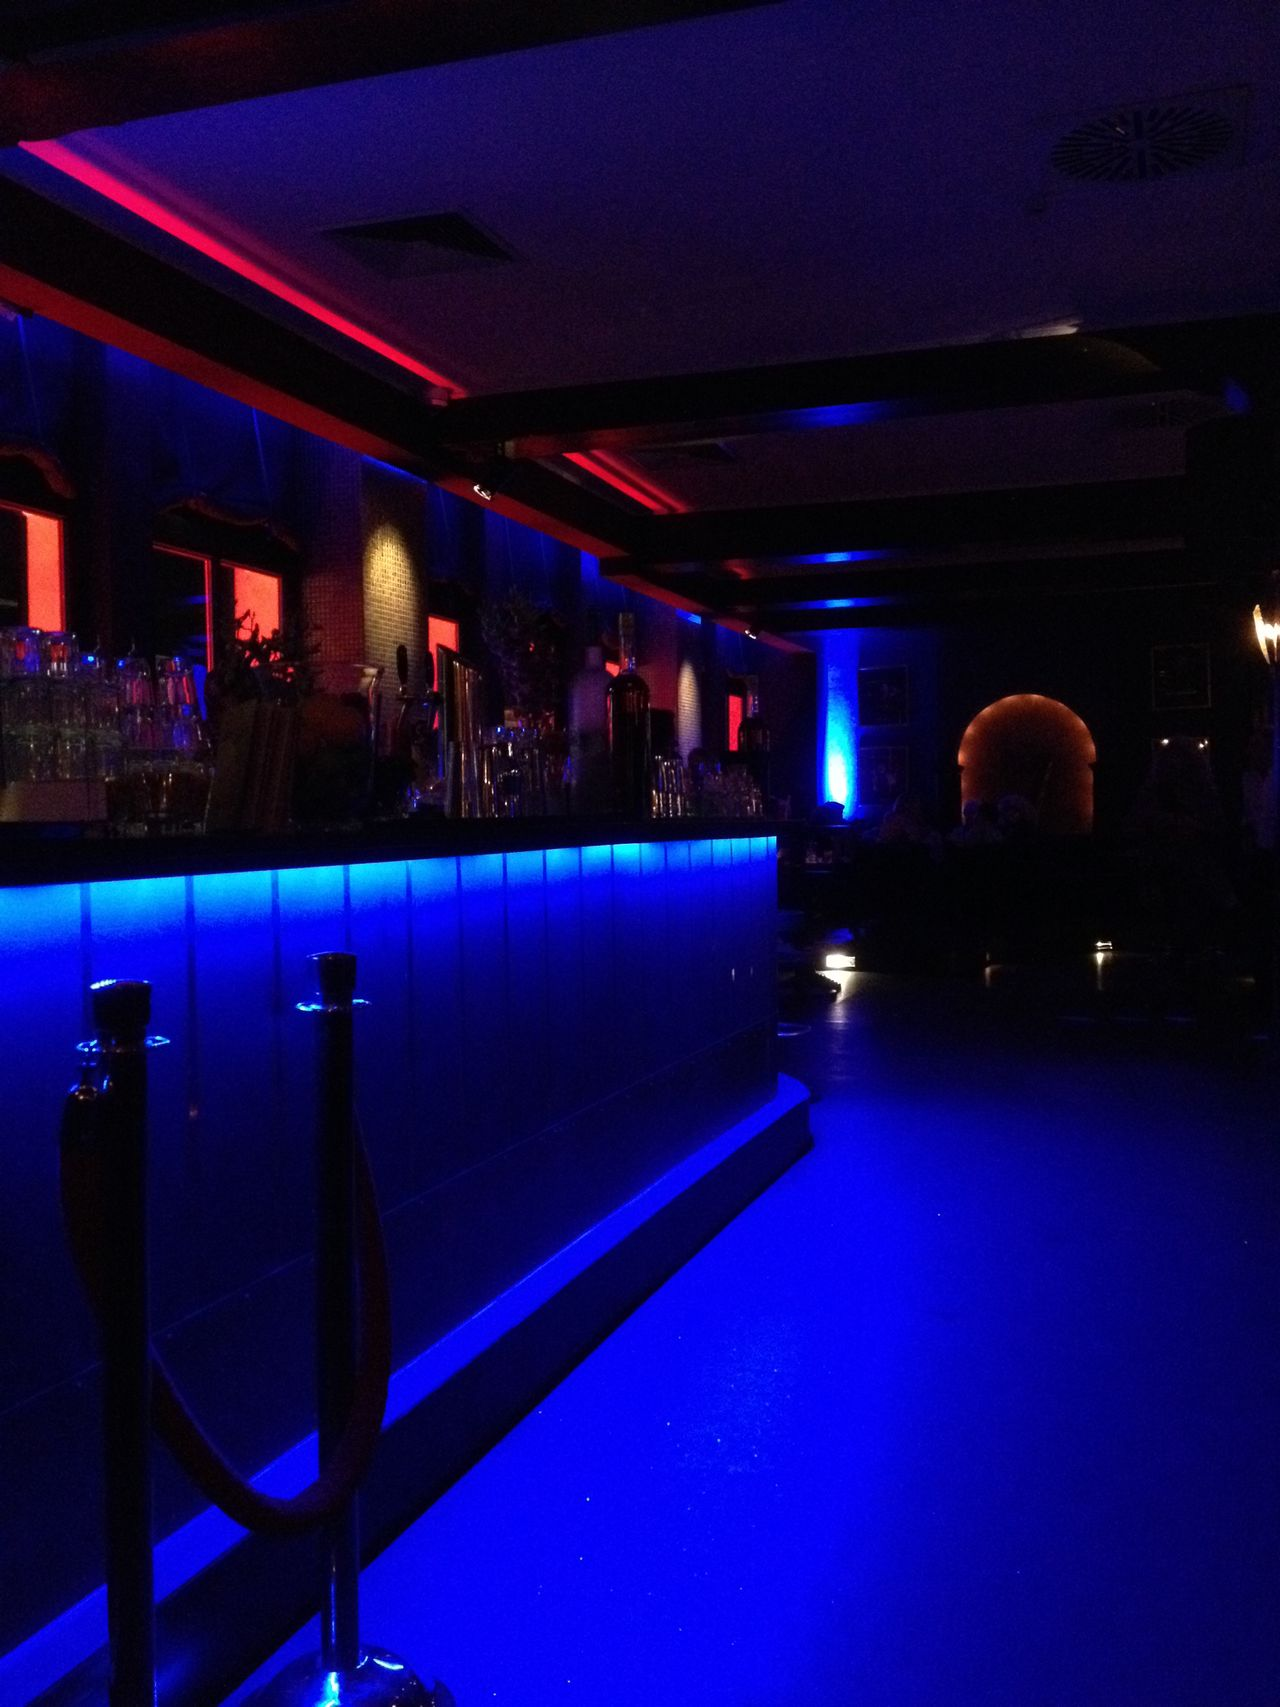 Architecture Bar Barscene Blue Built Structure Dark Electric Light Illuminated